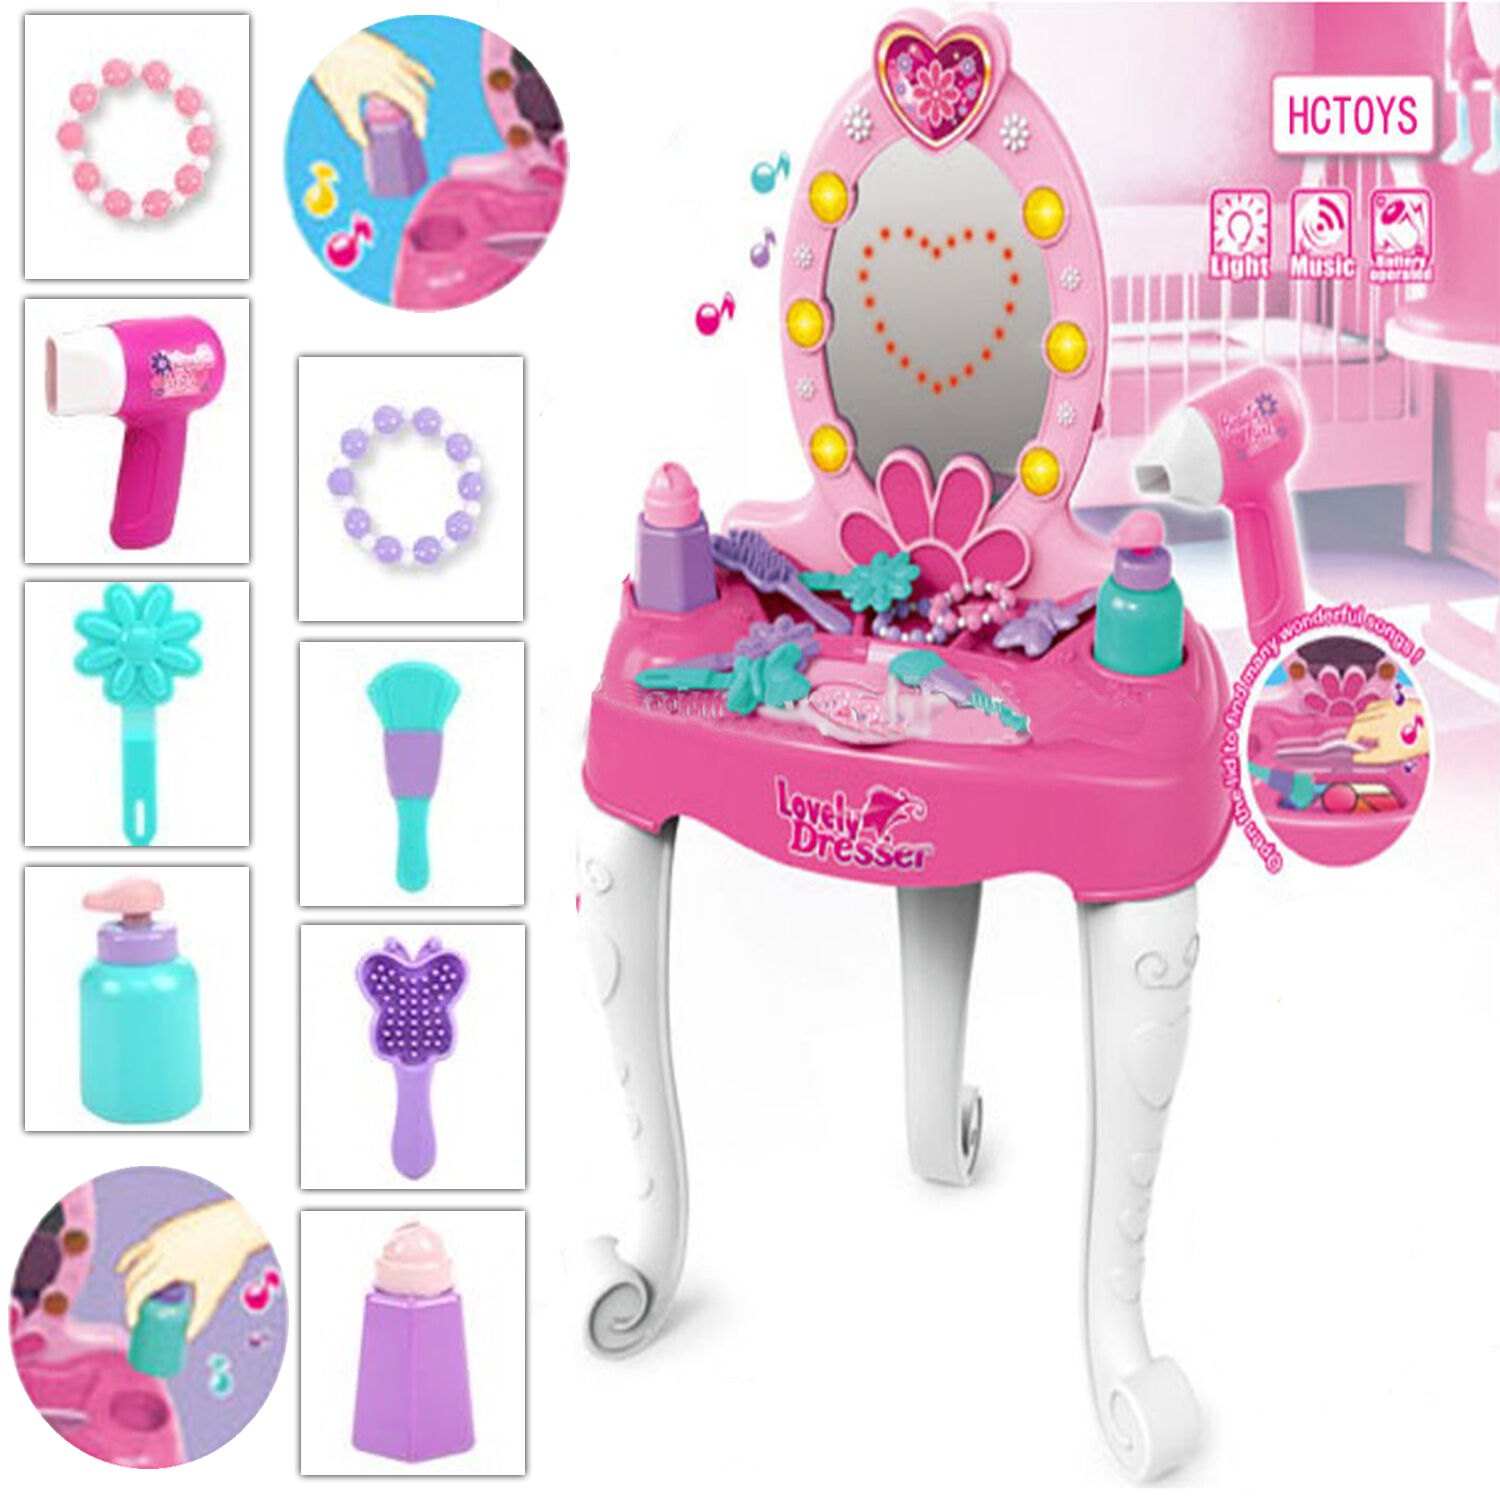 KIDS TOY DRESSING MAKEUP TABLE ROLE PLAY GIRLS VANITY LIGHT MUSIC SET XMAS GIFT